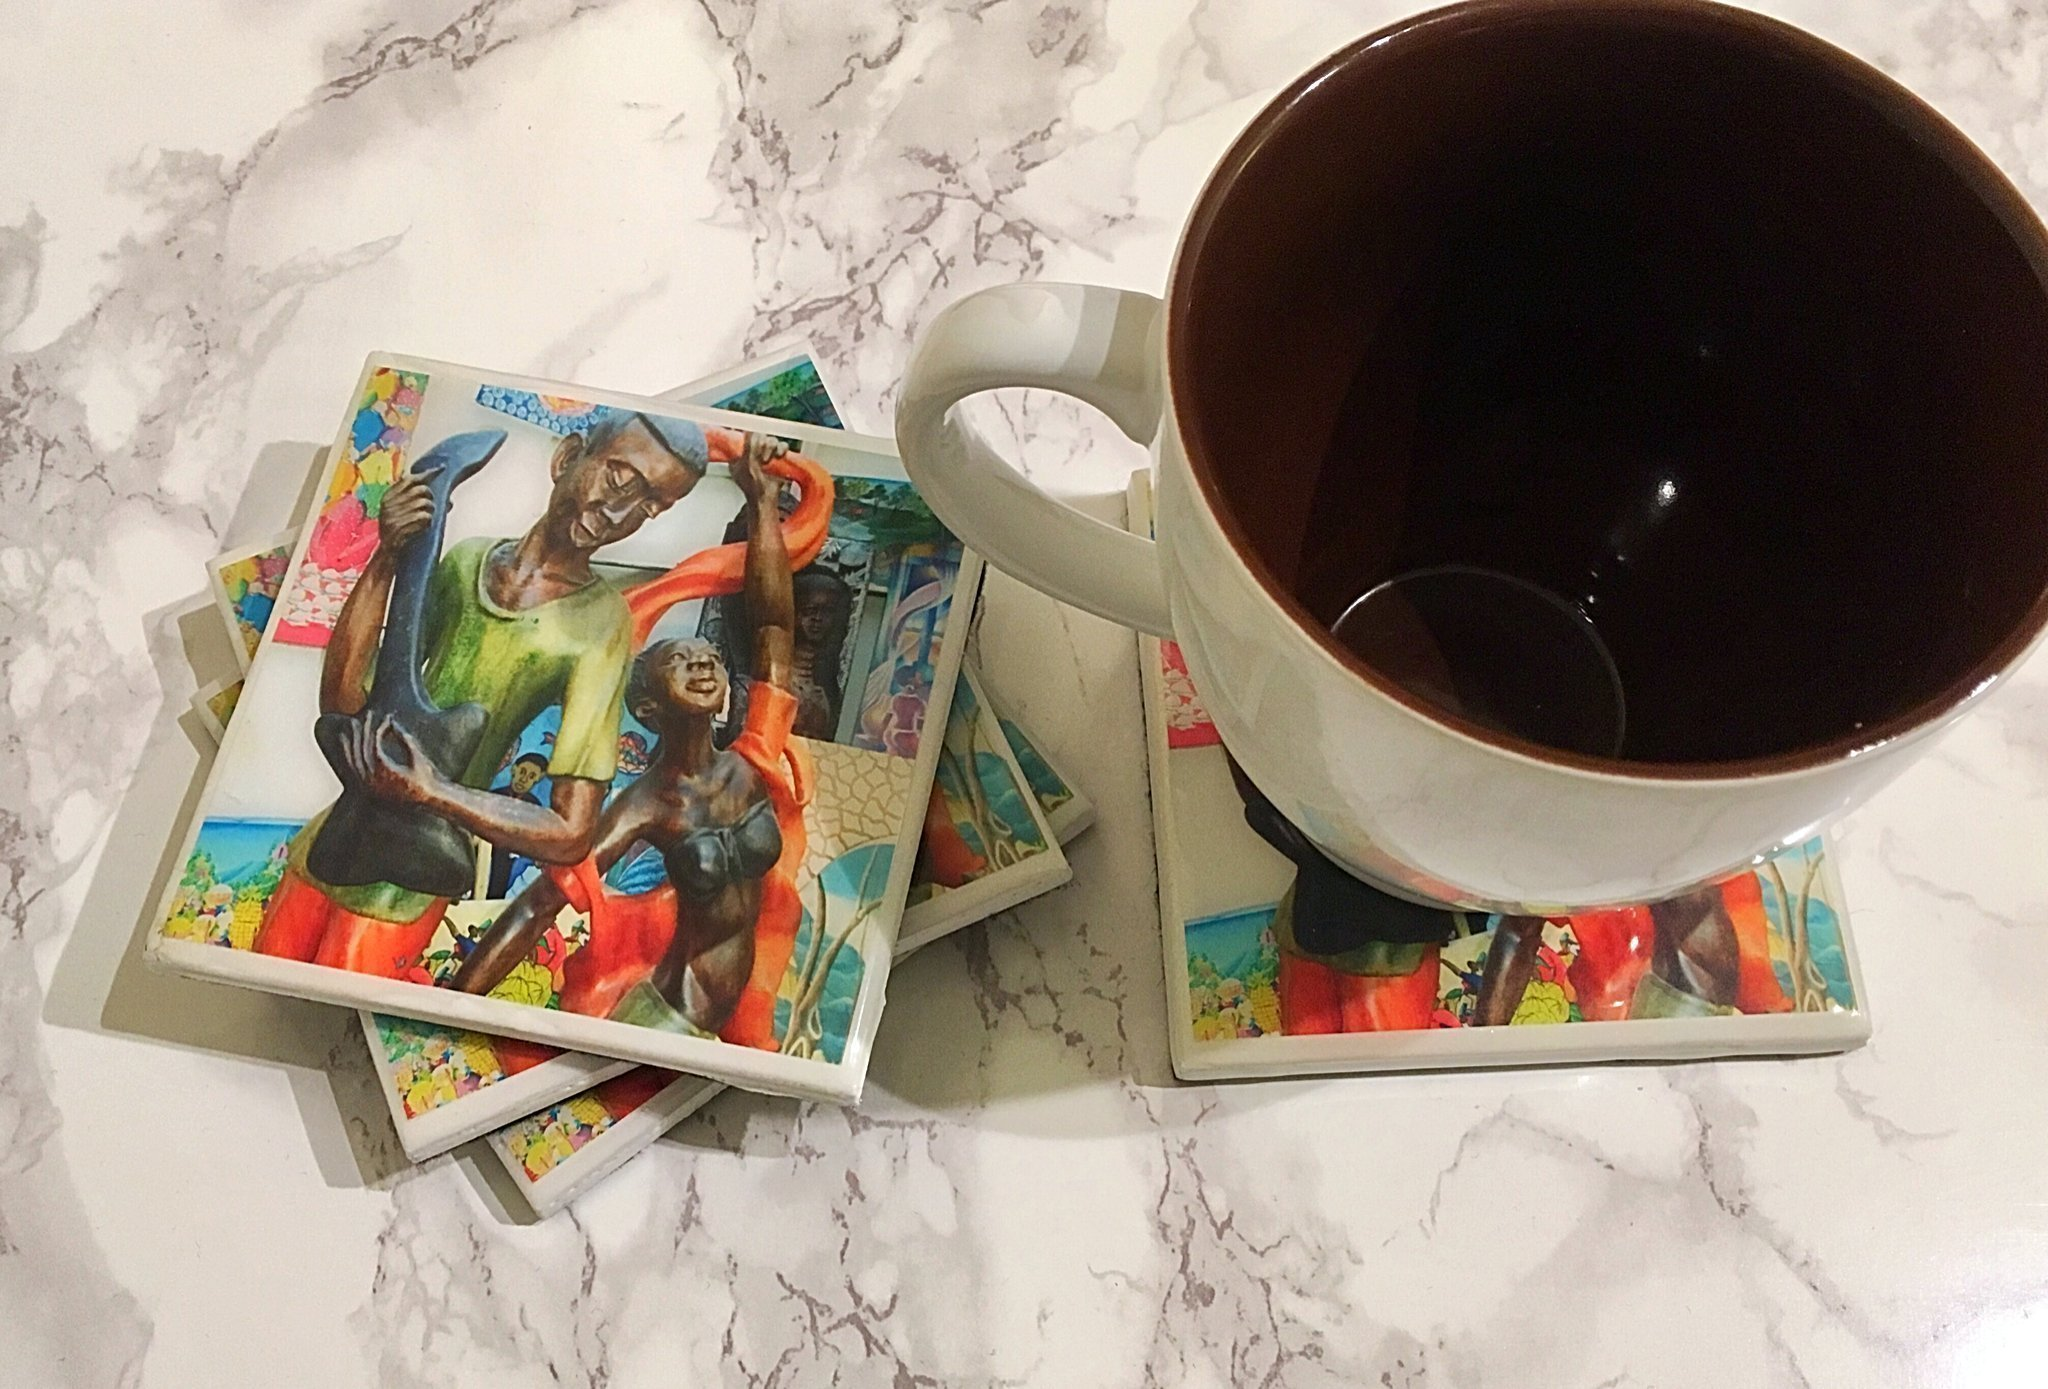 Lakay Treasures Coasters Set of 4 - Everything Gift, Housewarming Gift, Gift for Coworkers, Everyday Gift, Housewarming Gifts, Gift for Hostess, Birthday Gift, Coffee Tea Drinker, Wine Coasters